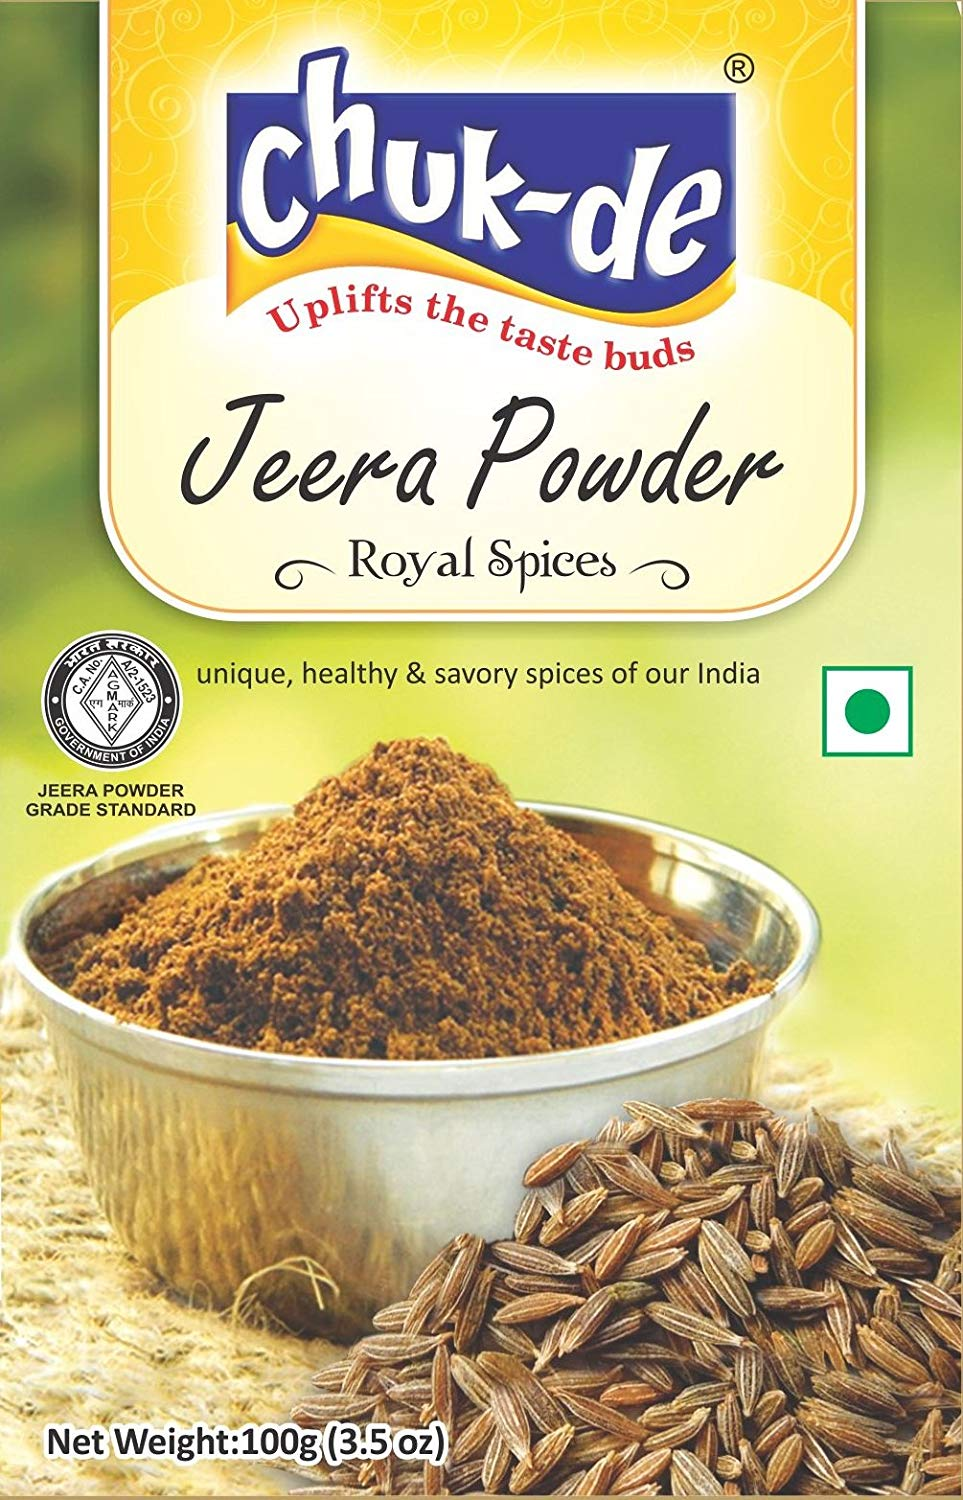 Chuk-de : Cumin Powder 200gm